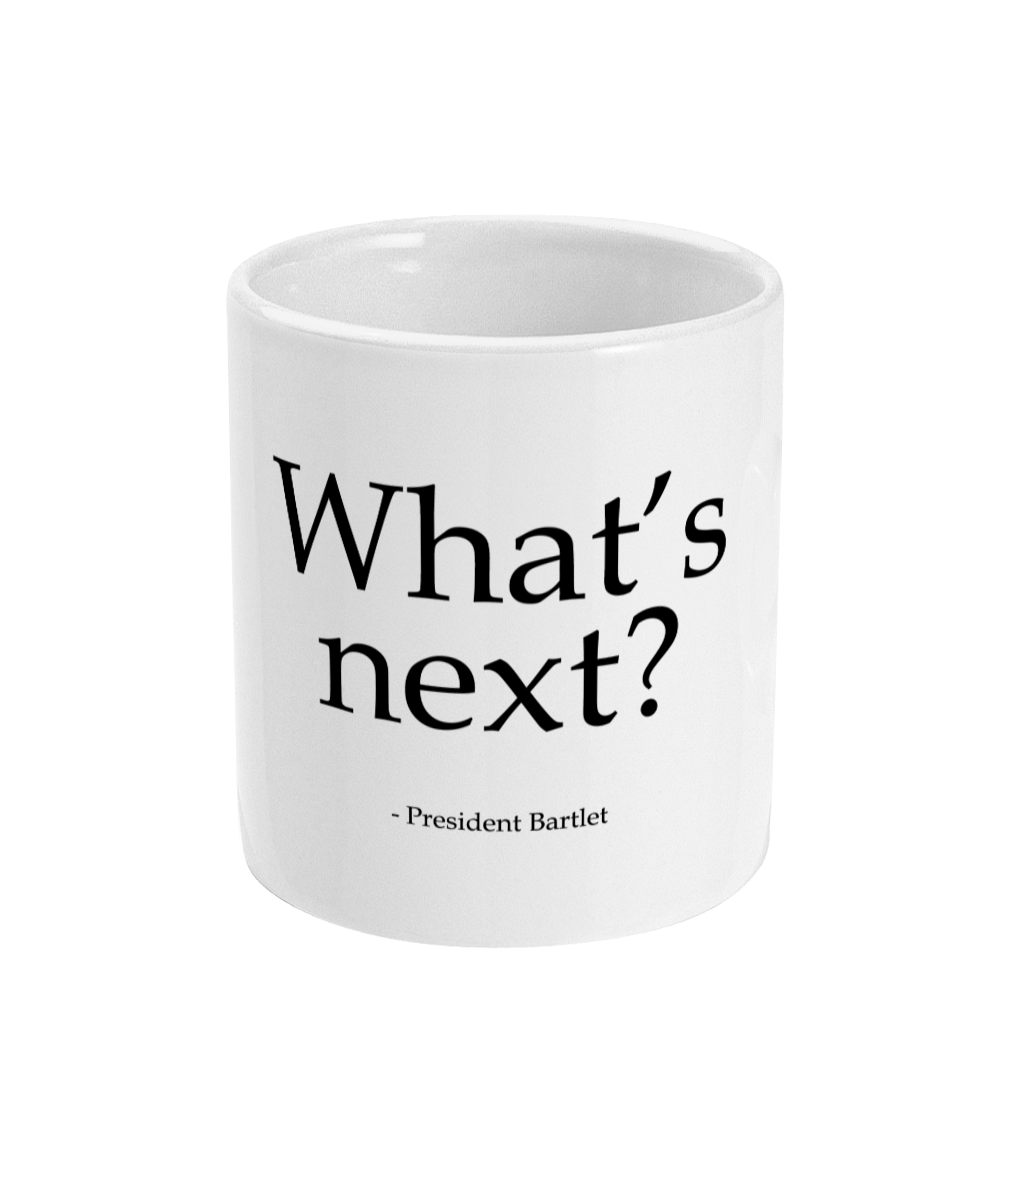 West Wing What's Next Mug